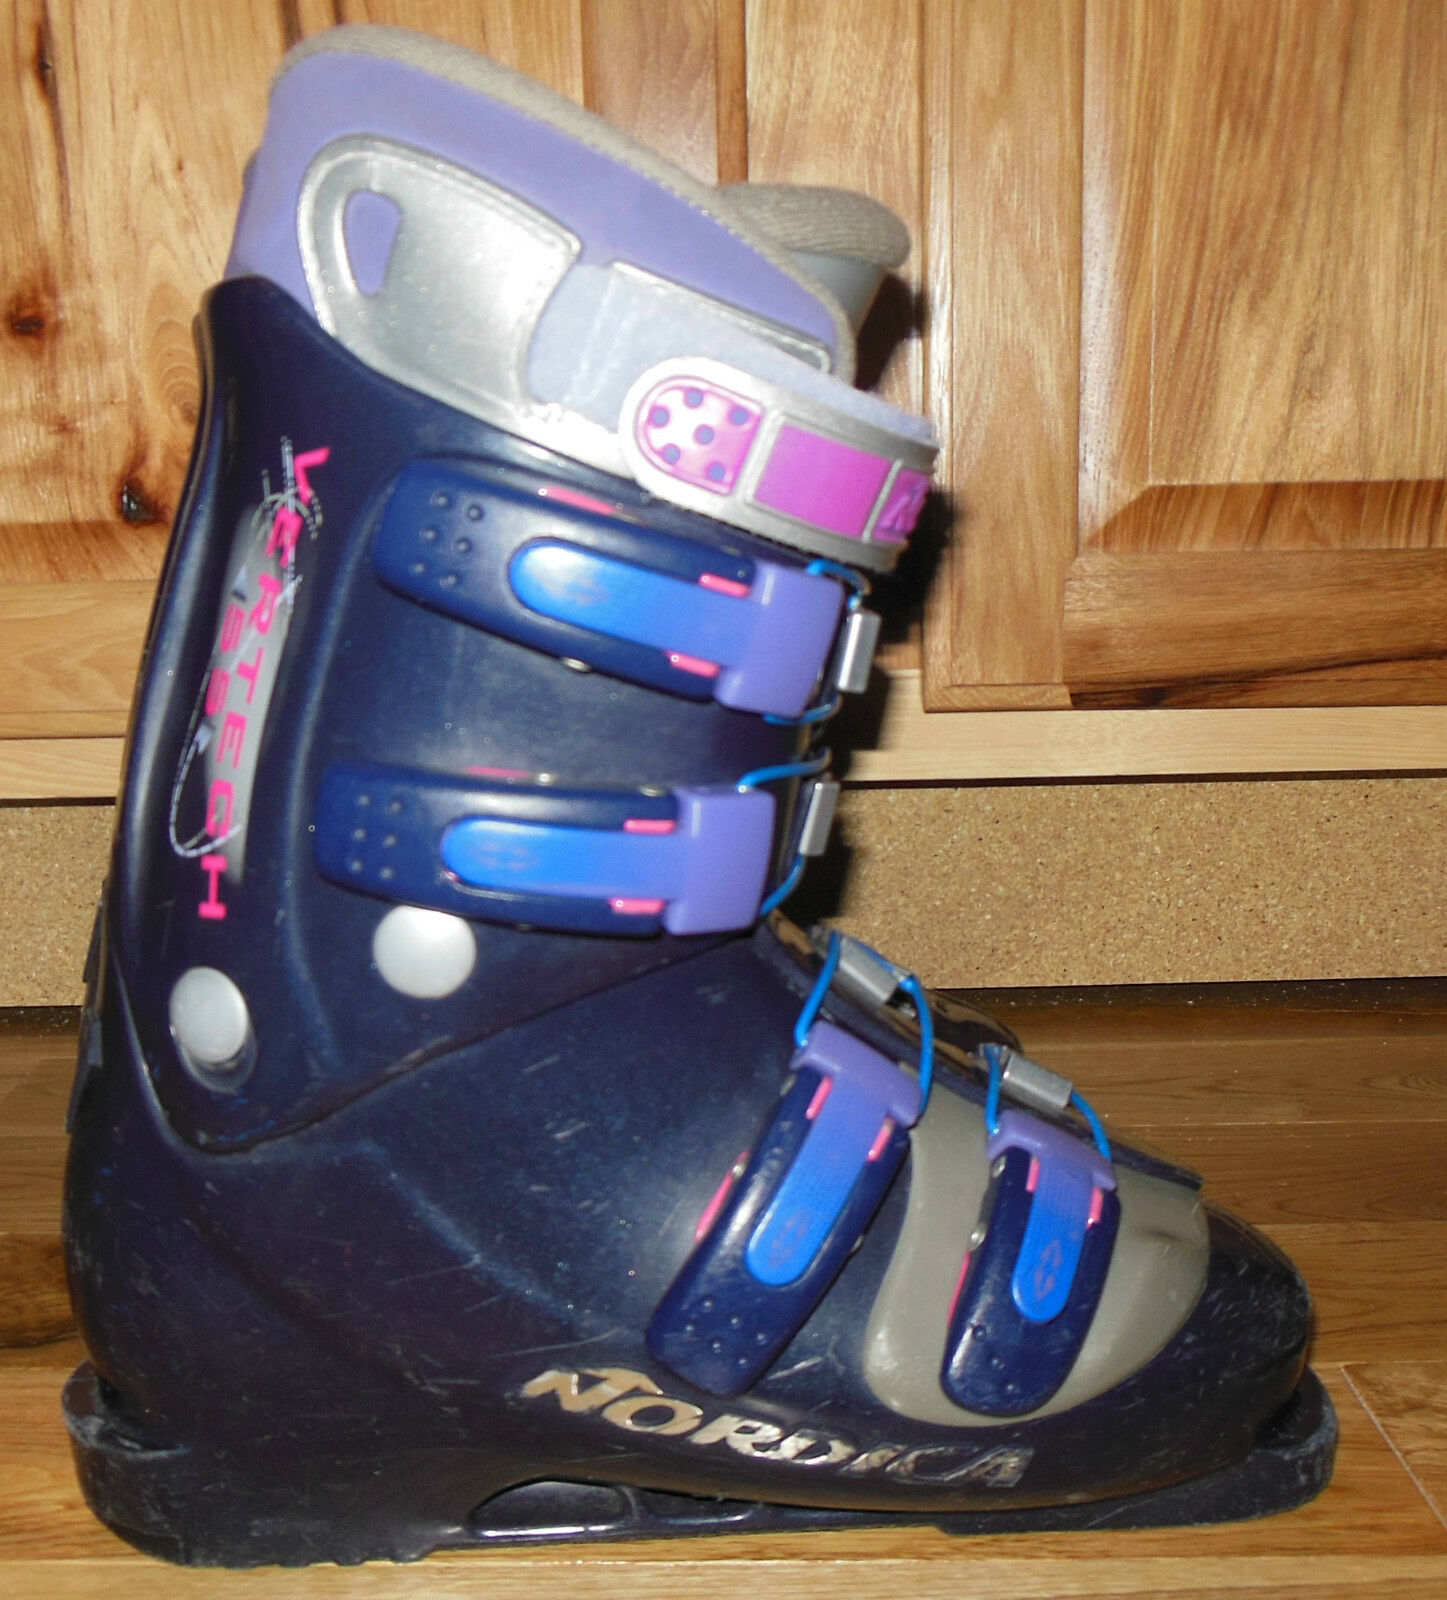 NORDICA greenECH 55 DOWNHILL SKI BOOTS WOMENS 7.5, MONDO 24, 280mm sole